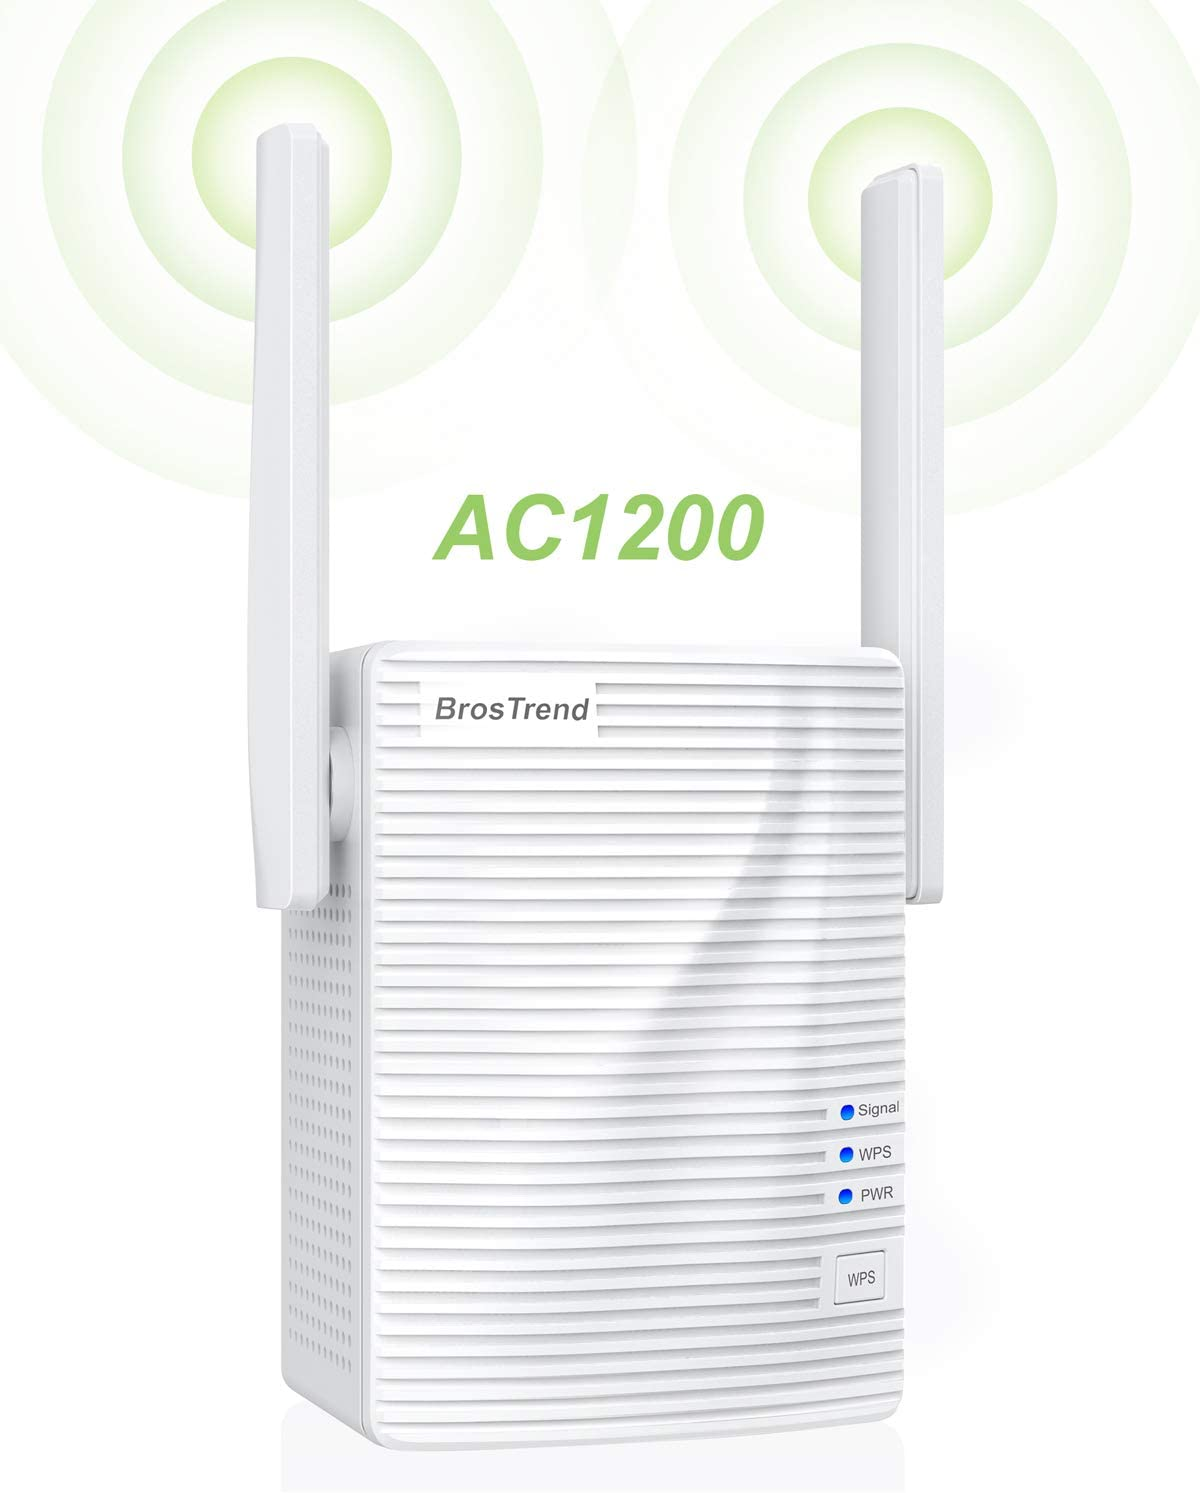 BrosTrend 1200Mbps WiFi Extender Repeater Range Extender WiFi Booster for Home, Coverage up to 1200 sq.ft, Simple Setup, Work with Any WiFi Routers